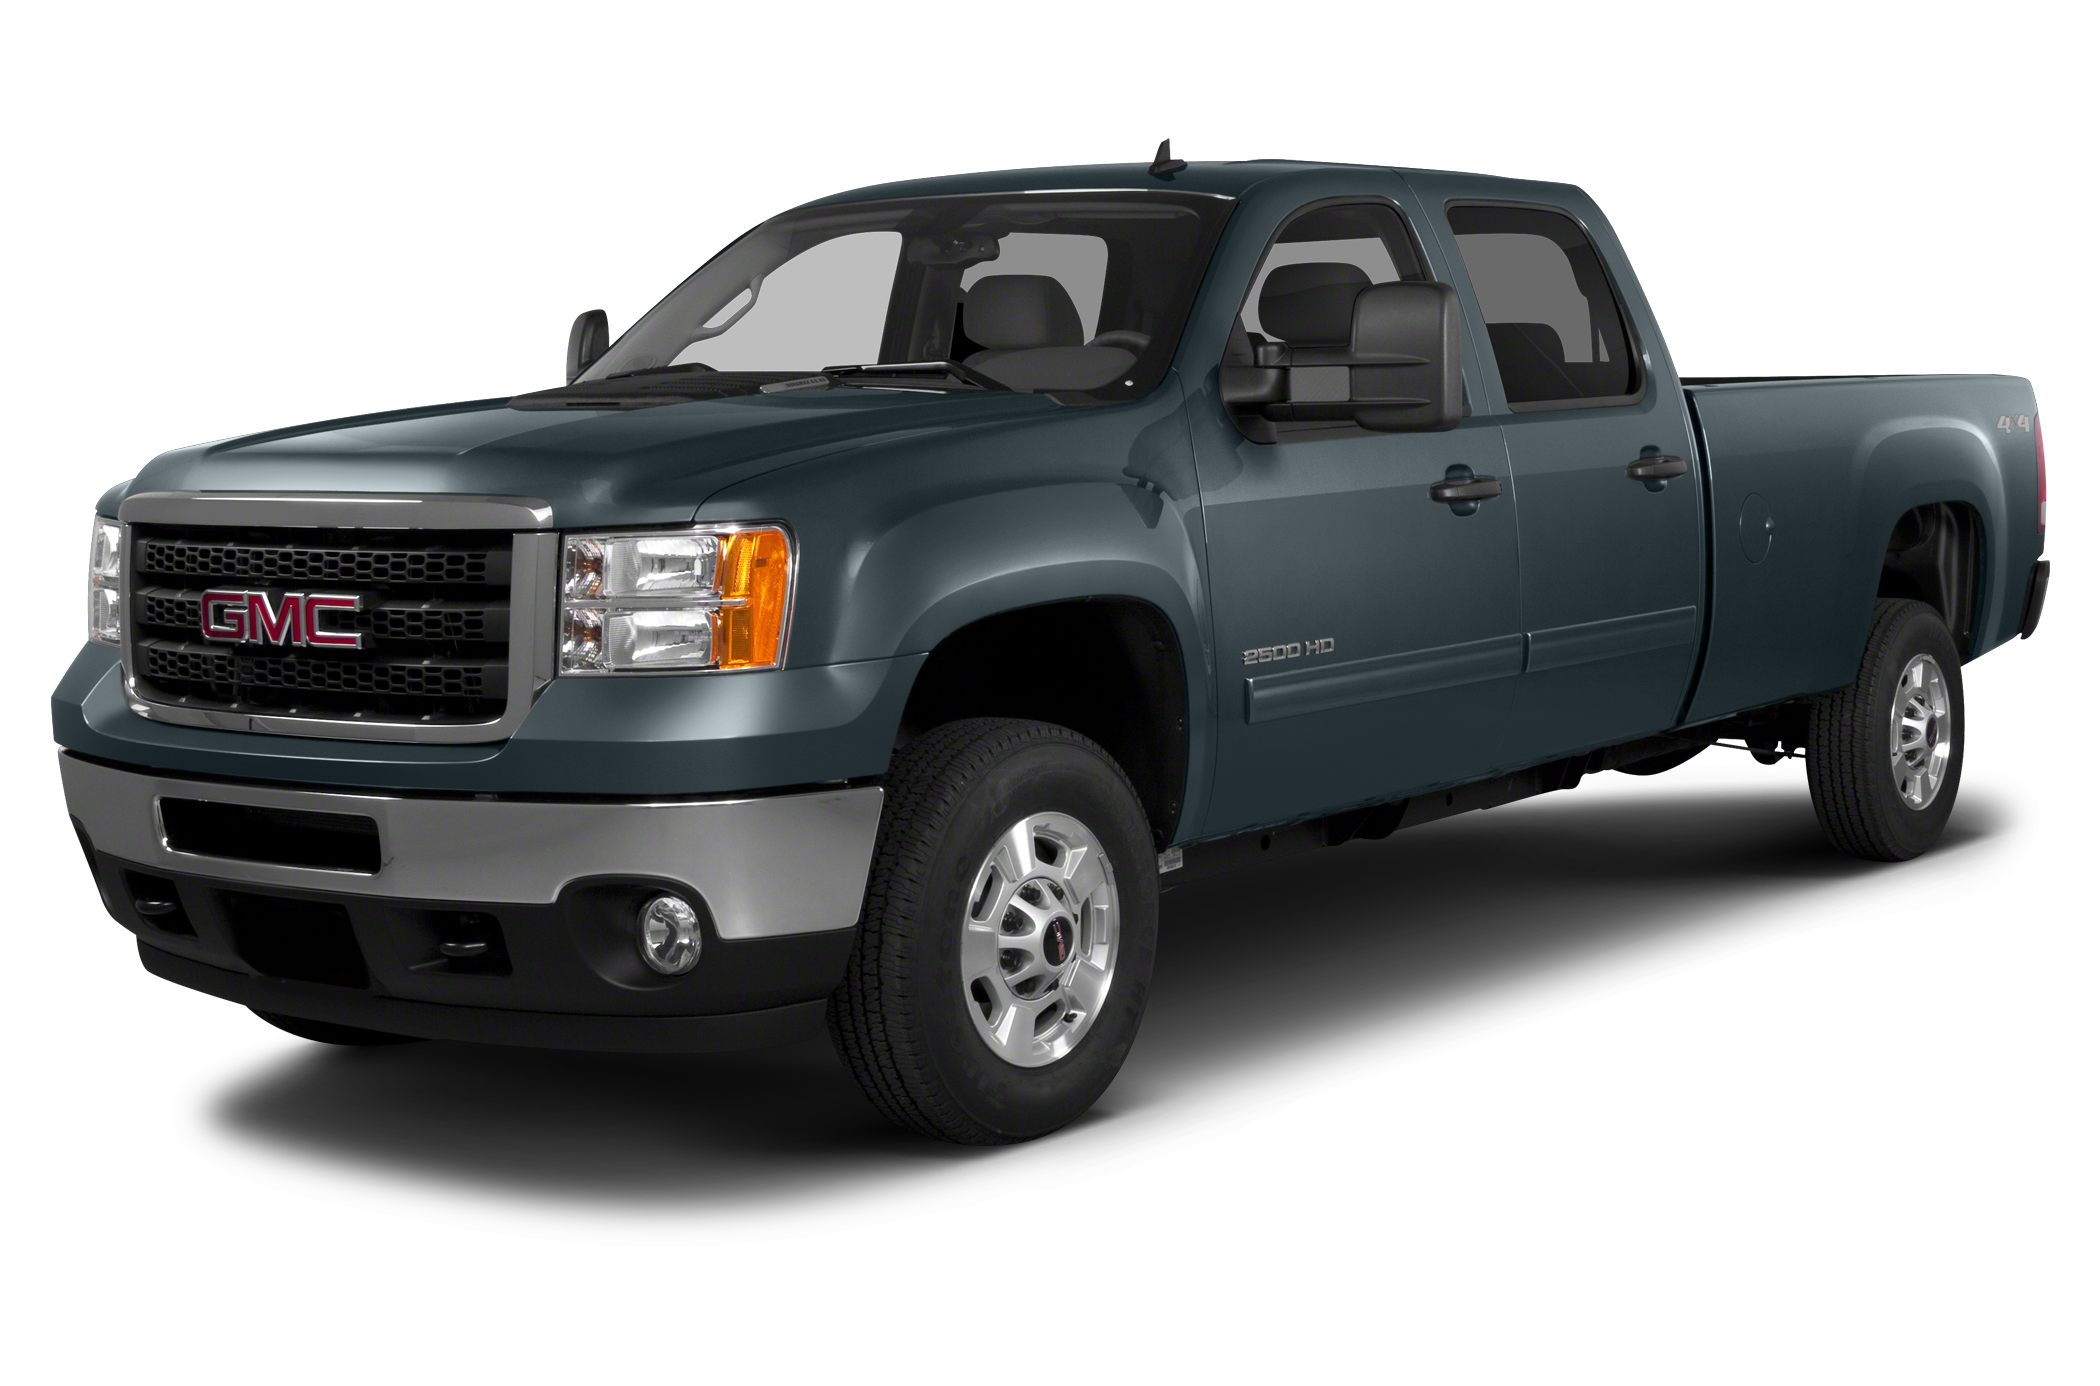 2014 GMC Sierra 2500HD